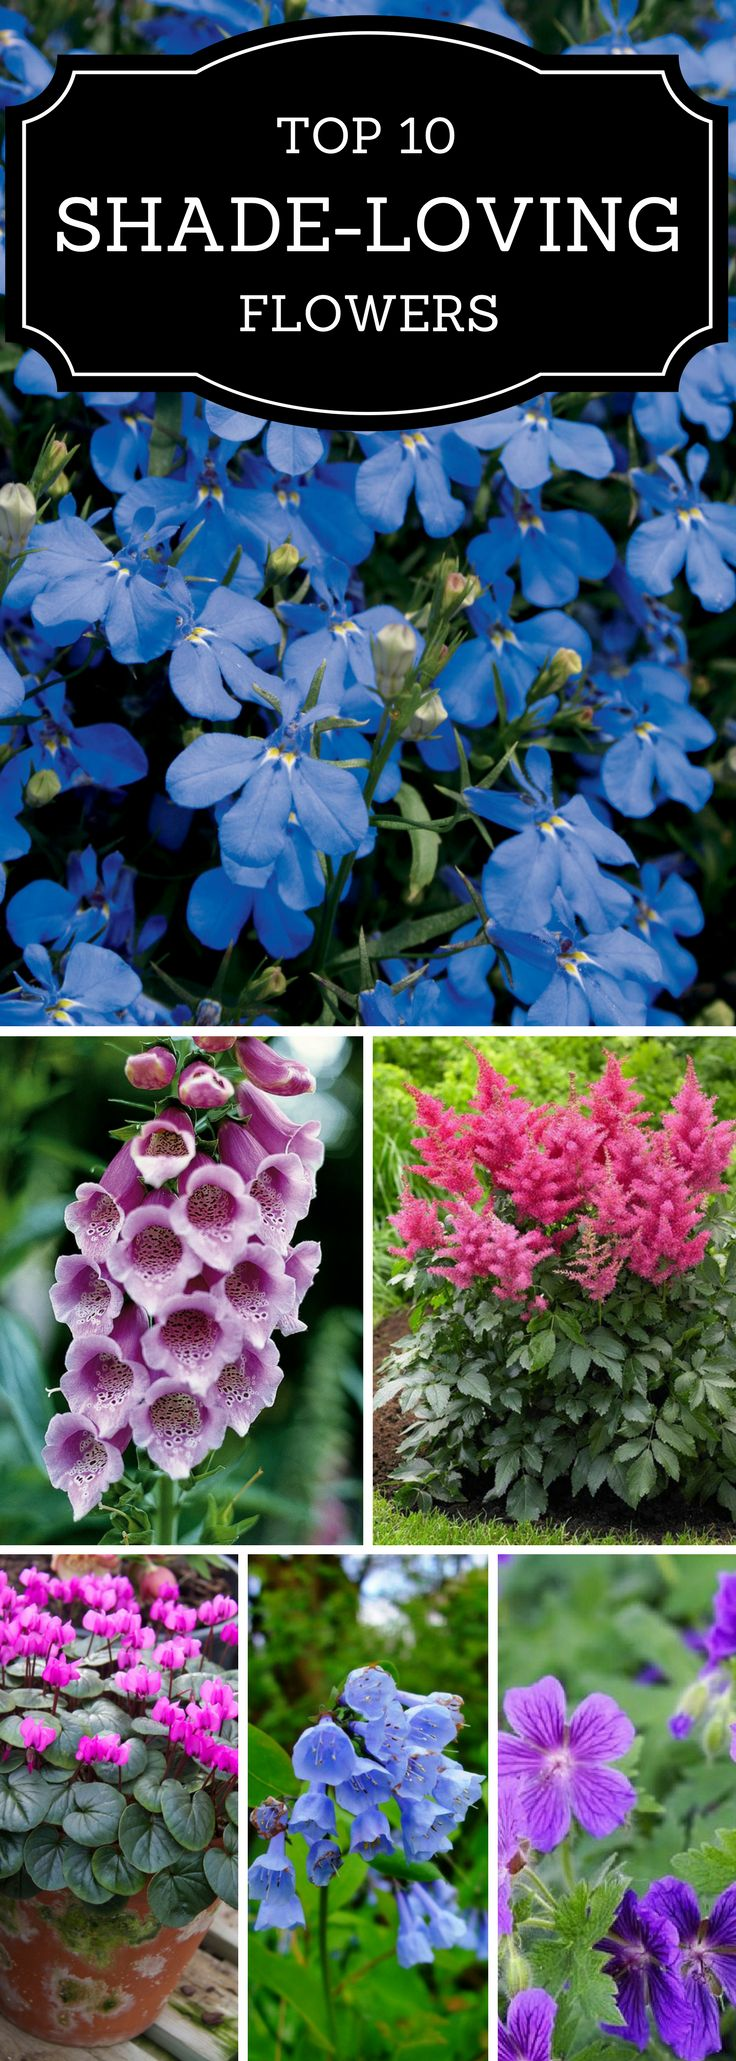 Got a shady yard but want the colorful pops of flowers?  Here's a guide to best flowers for shade!